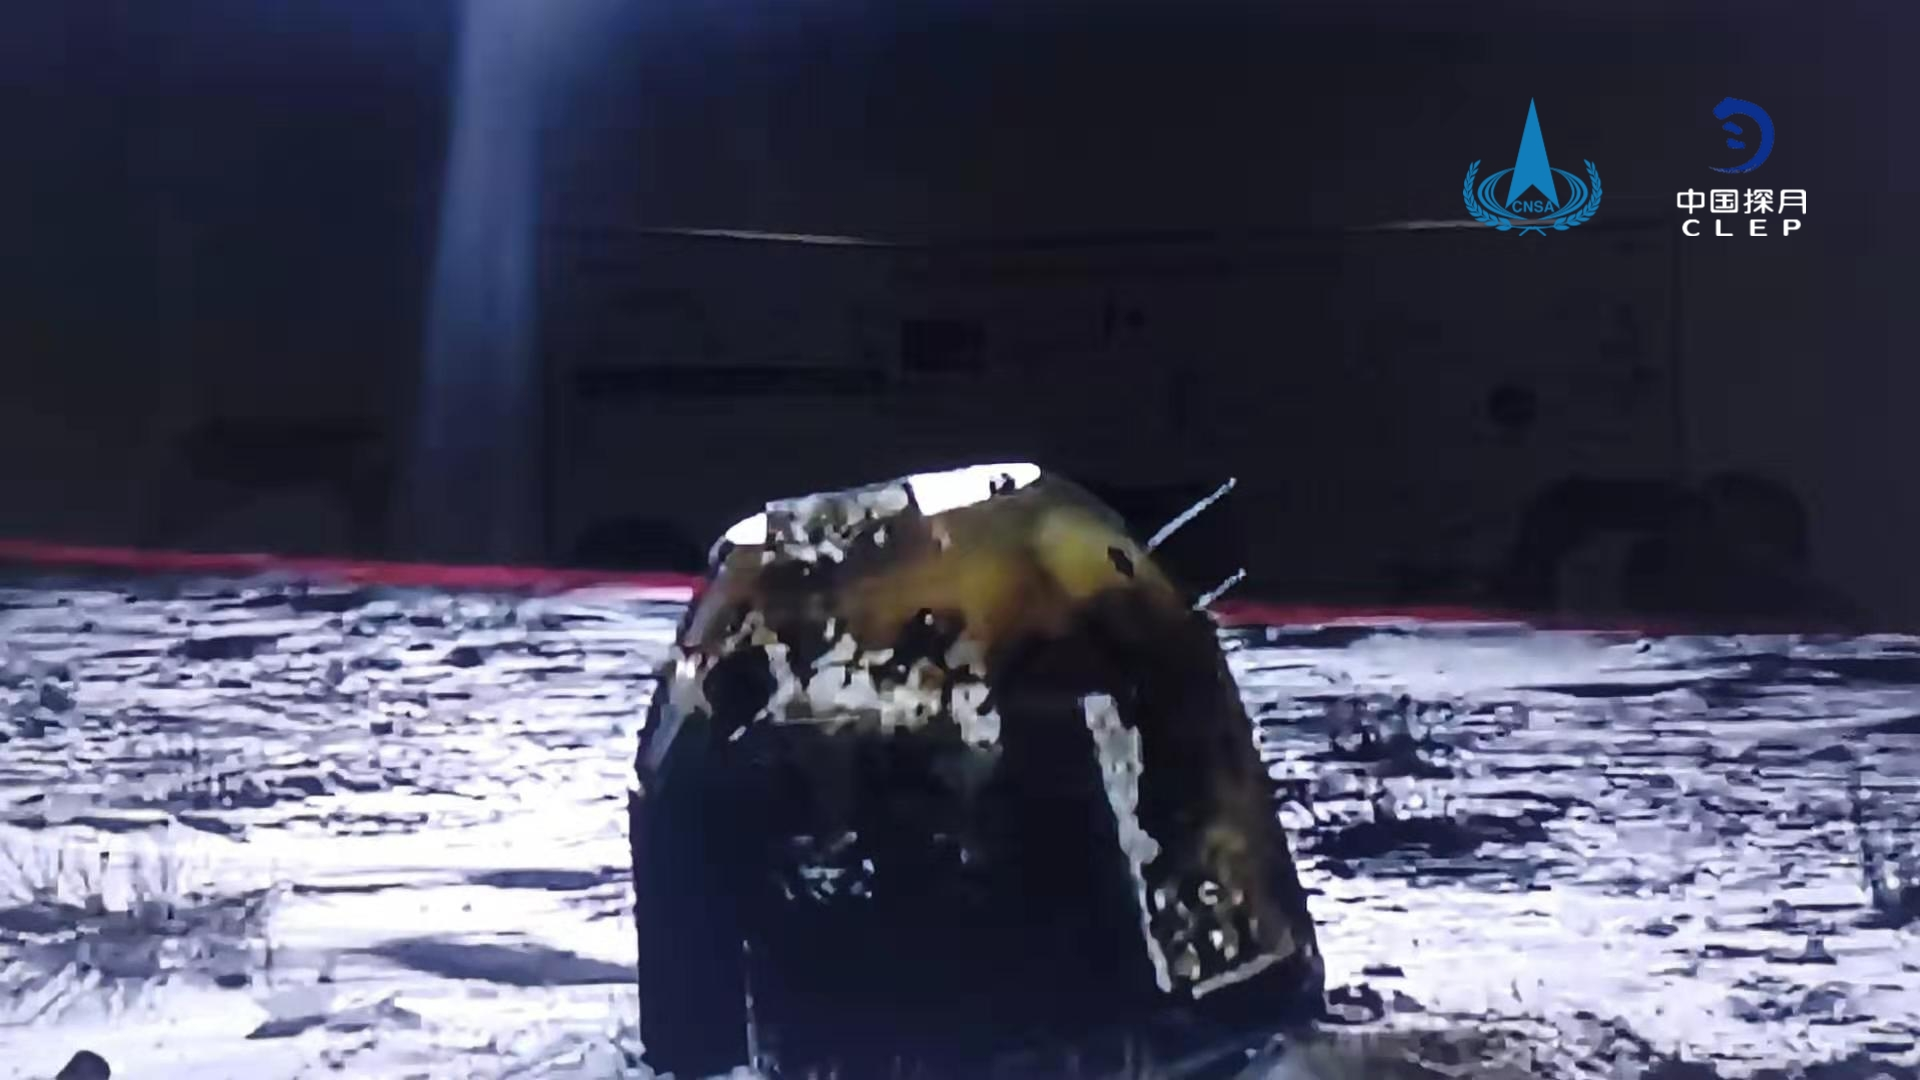 China's Chang'e 5 moon samples are headed to the lab